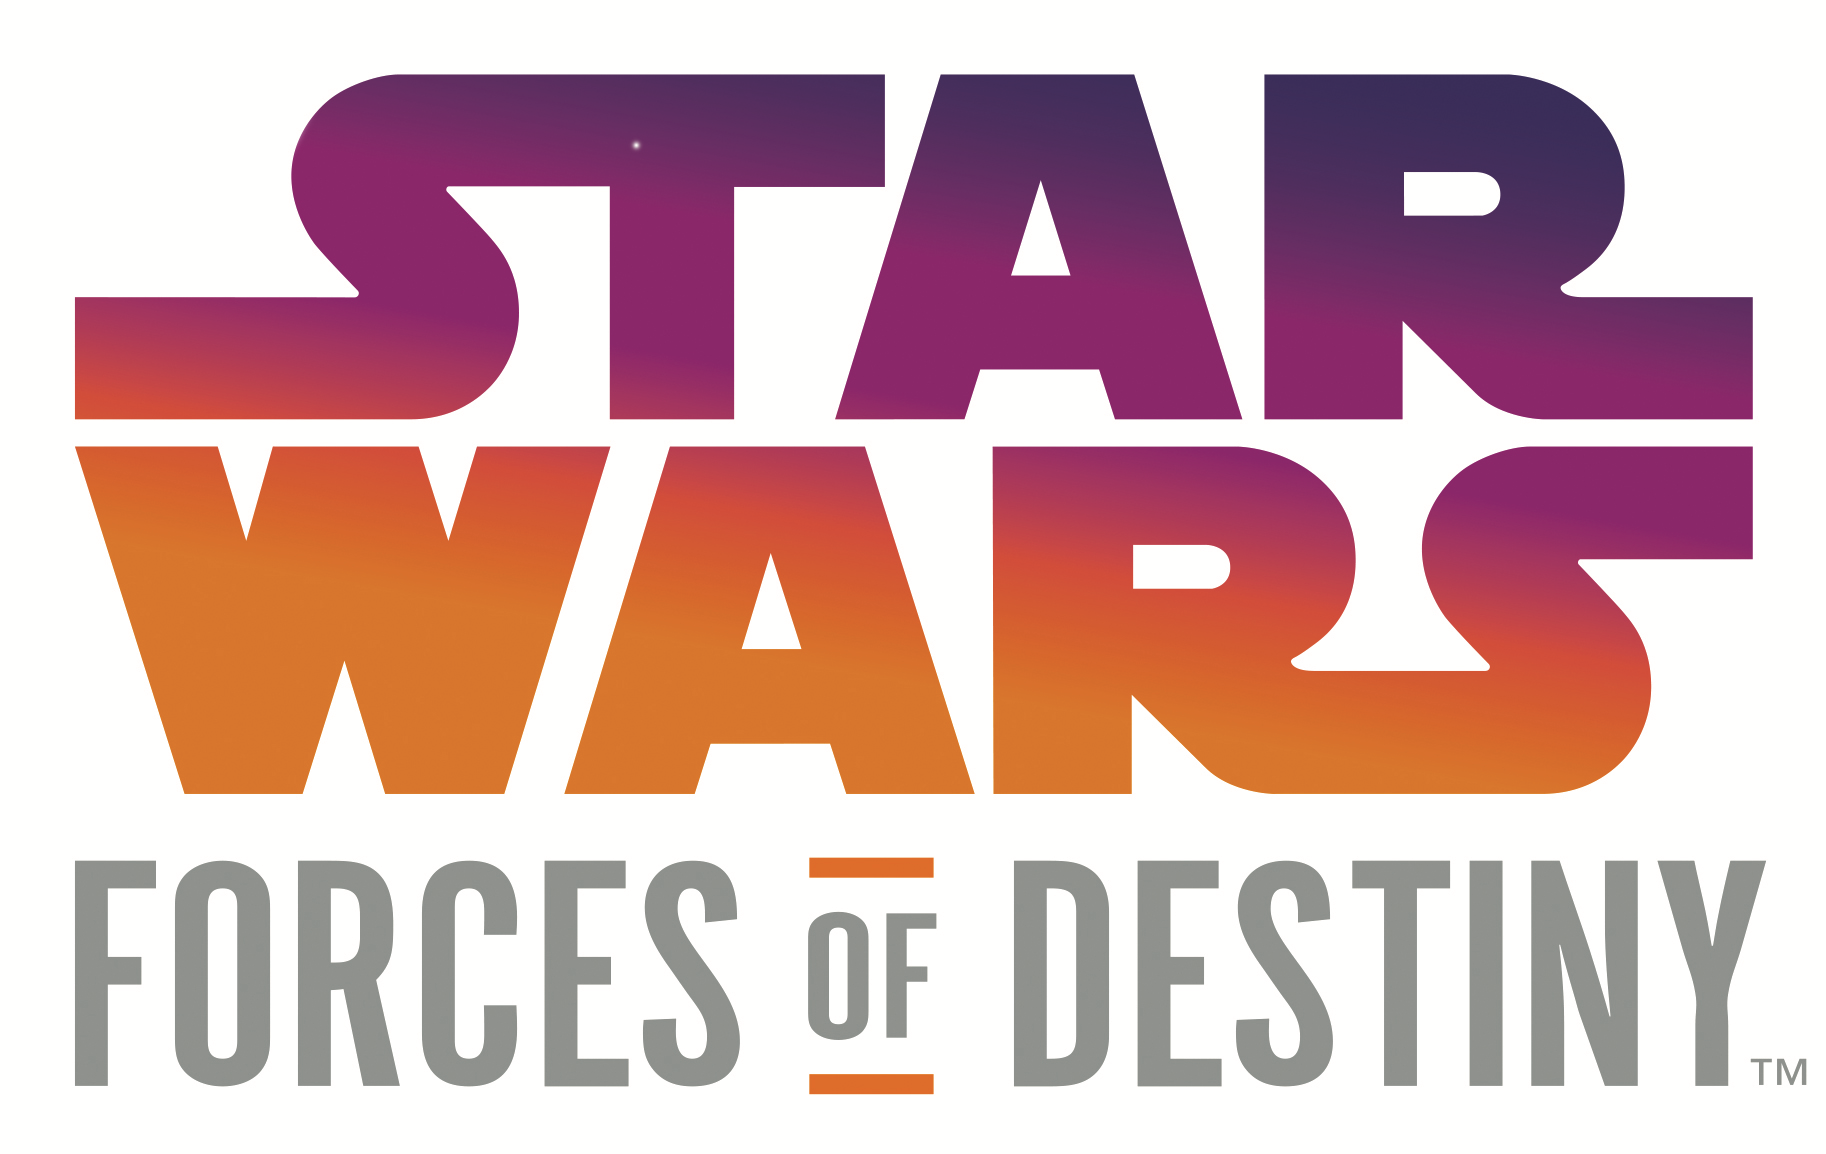 Star Wars: Forces of Destiny episode list